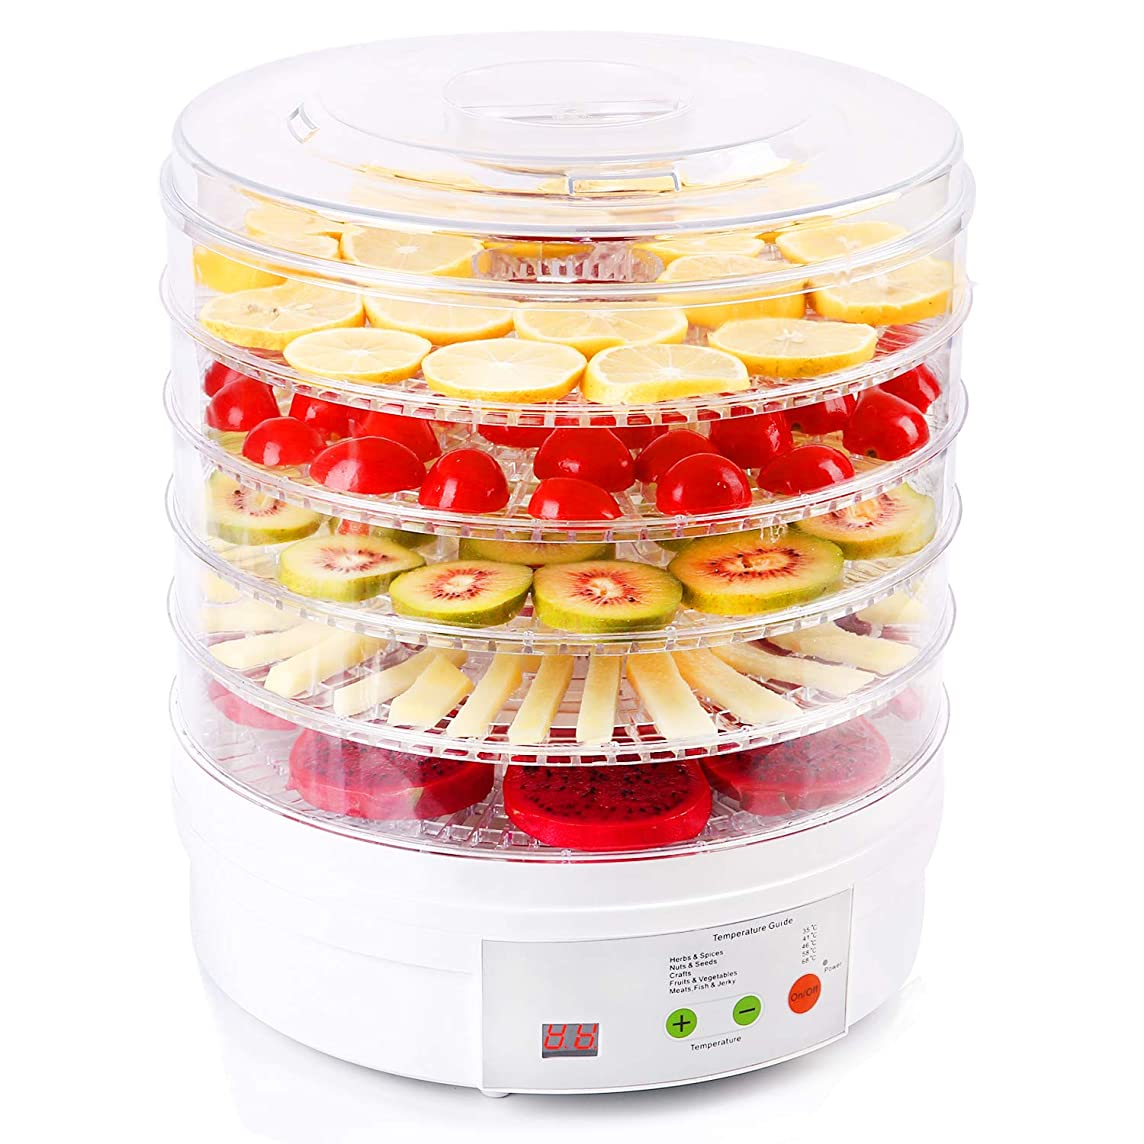 Tlanpu BPA-Free Food Dehydrator, Home Full Touch Digital Dehydrator,5 Trays Food Preserver with Adjustable Temperature and Timer, Suitable for Meat or Beef Jerky, Fruits and Vegetables, Etc.